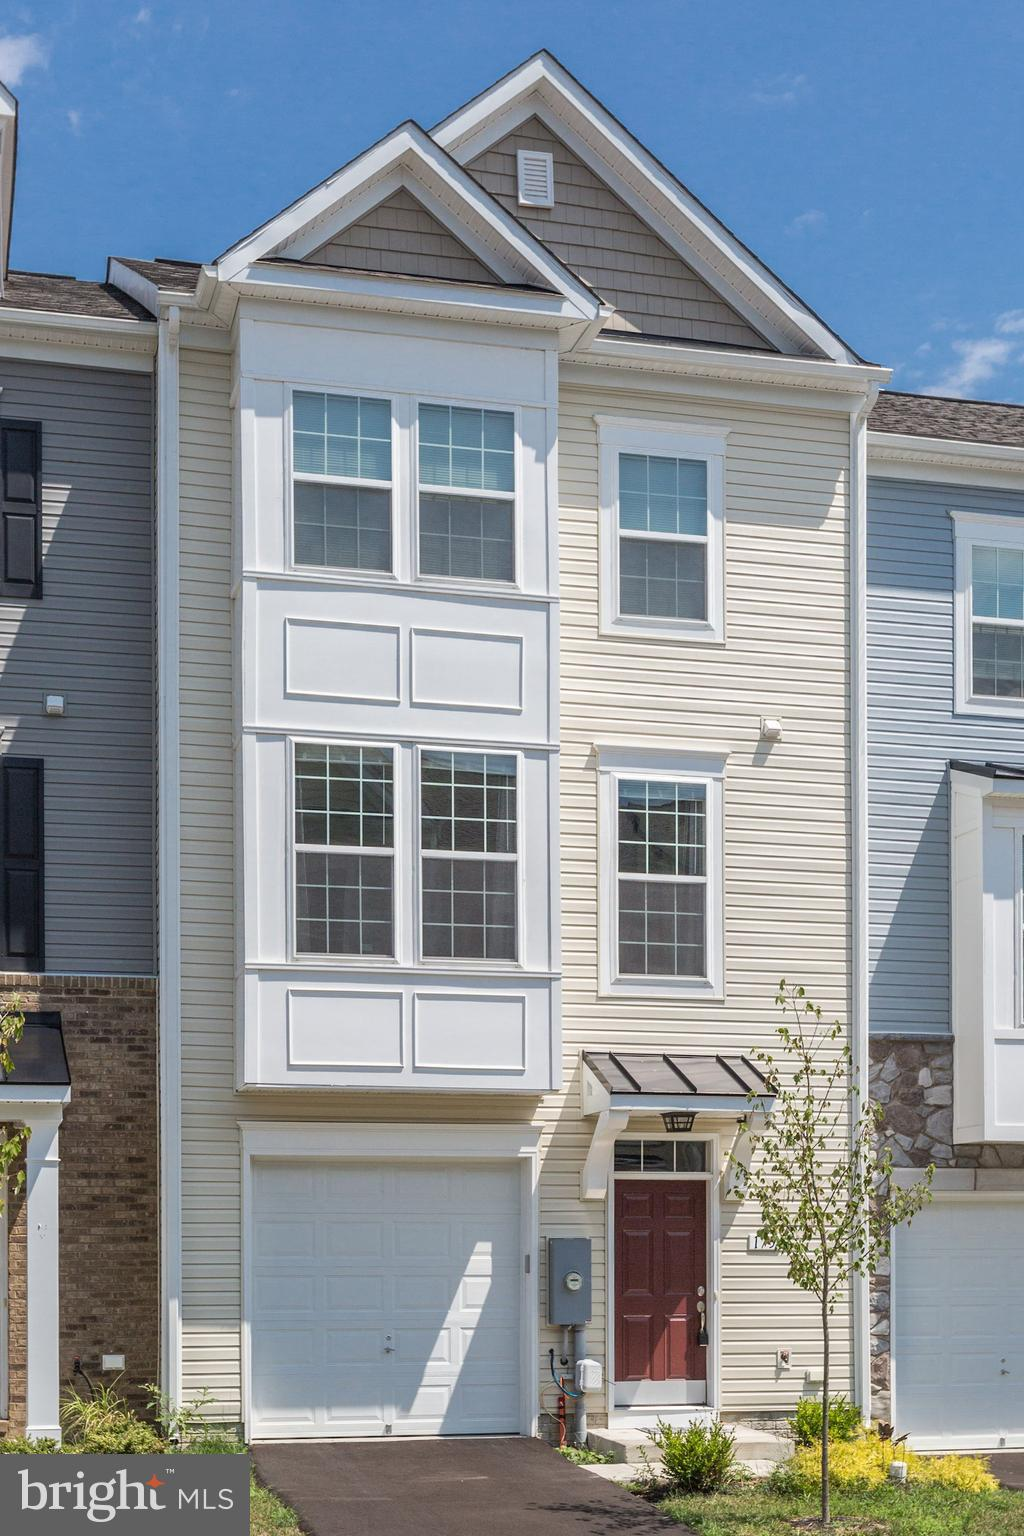 Beautiful 3 Level Town House, Open Floor Plan, Morning Room Off The Kitchen, 3 Bedrooms, 2 Full Bath